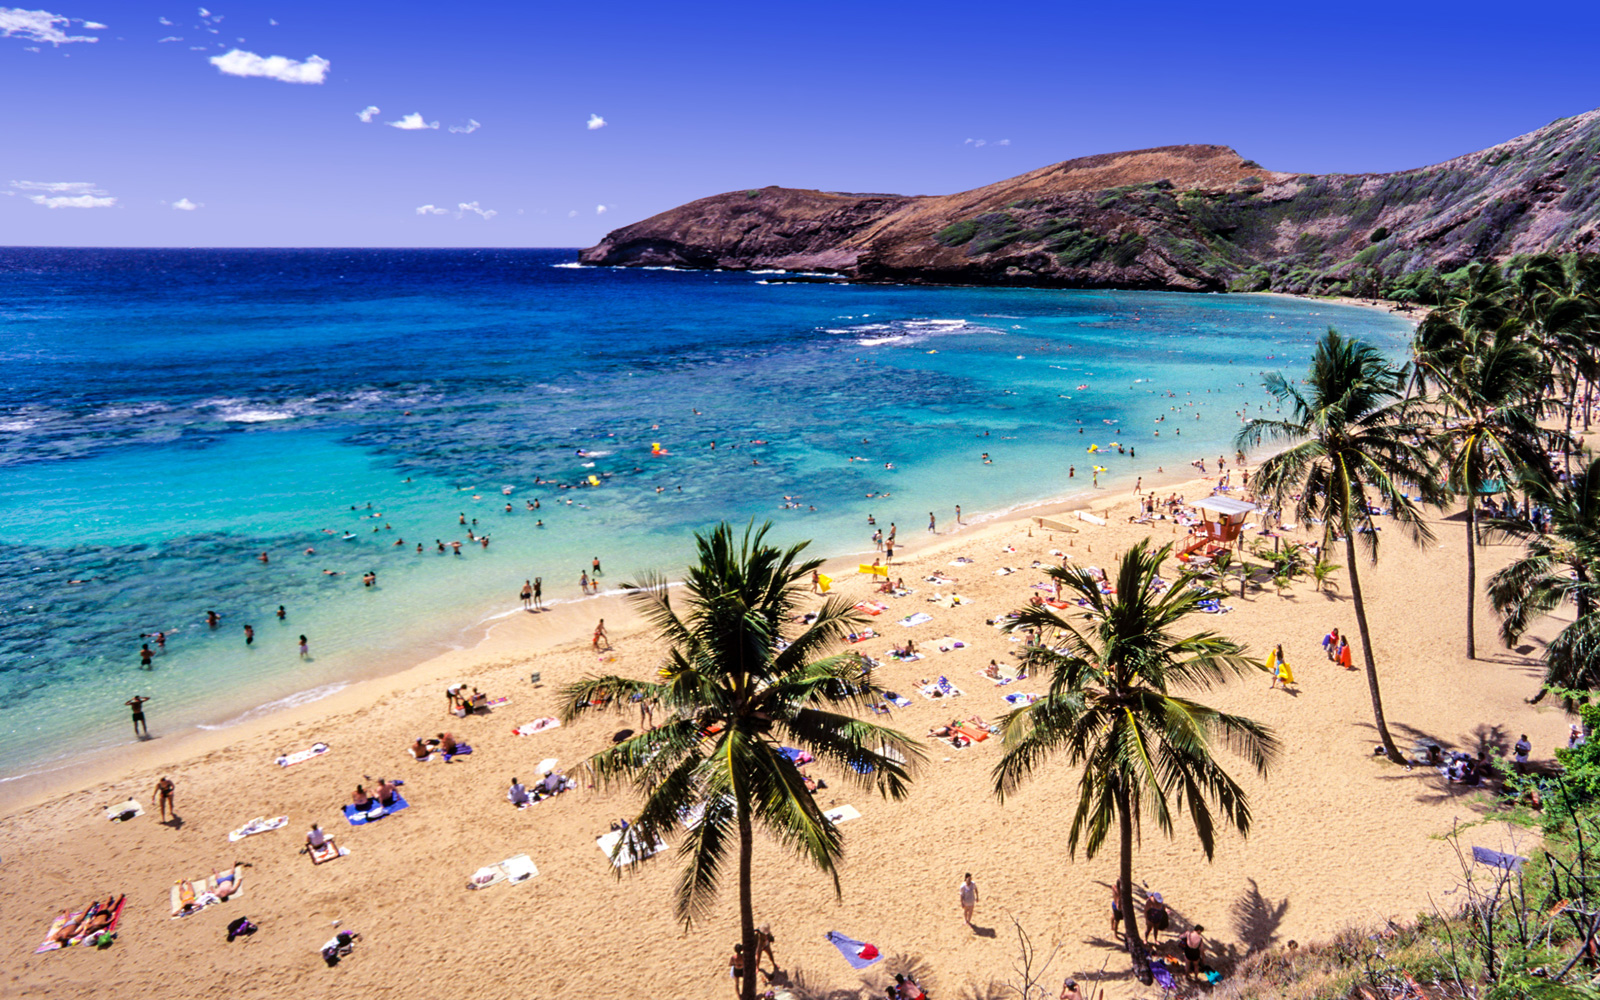 Cheap Flights to Hawaii Starting at $337 for This Winter